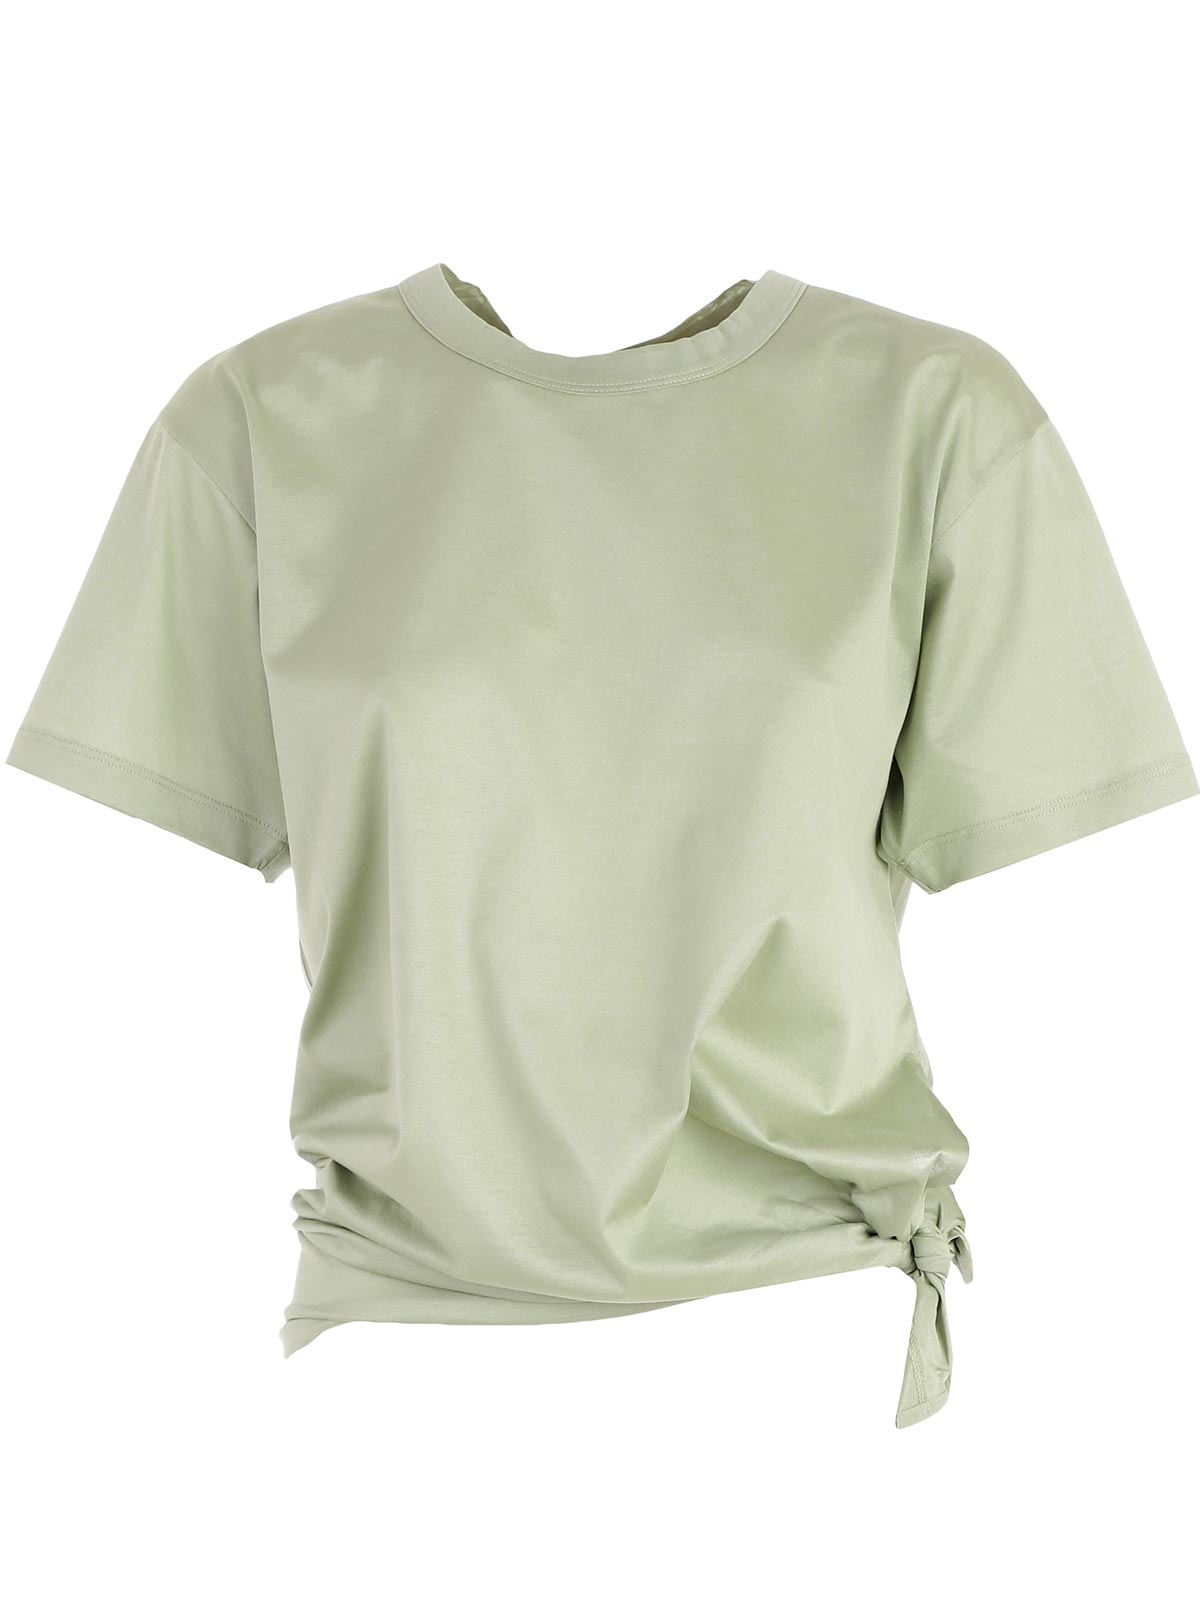 Picture of Erika Cavallini T-Shirt